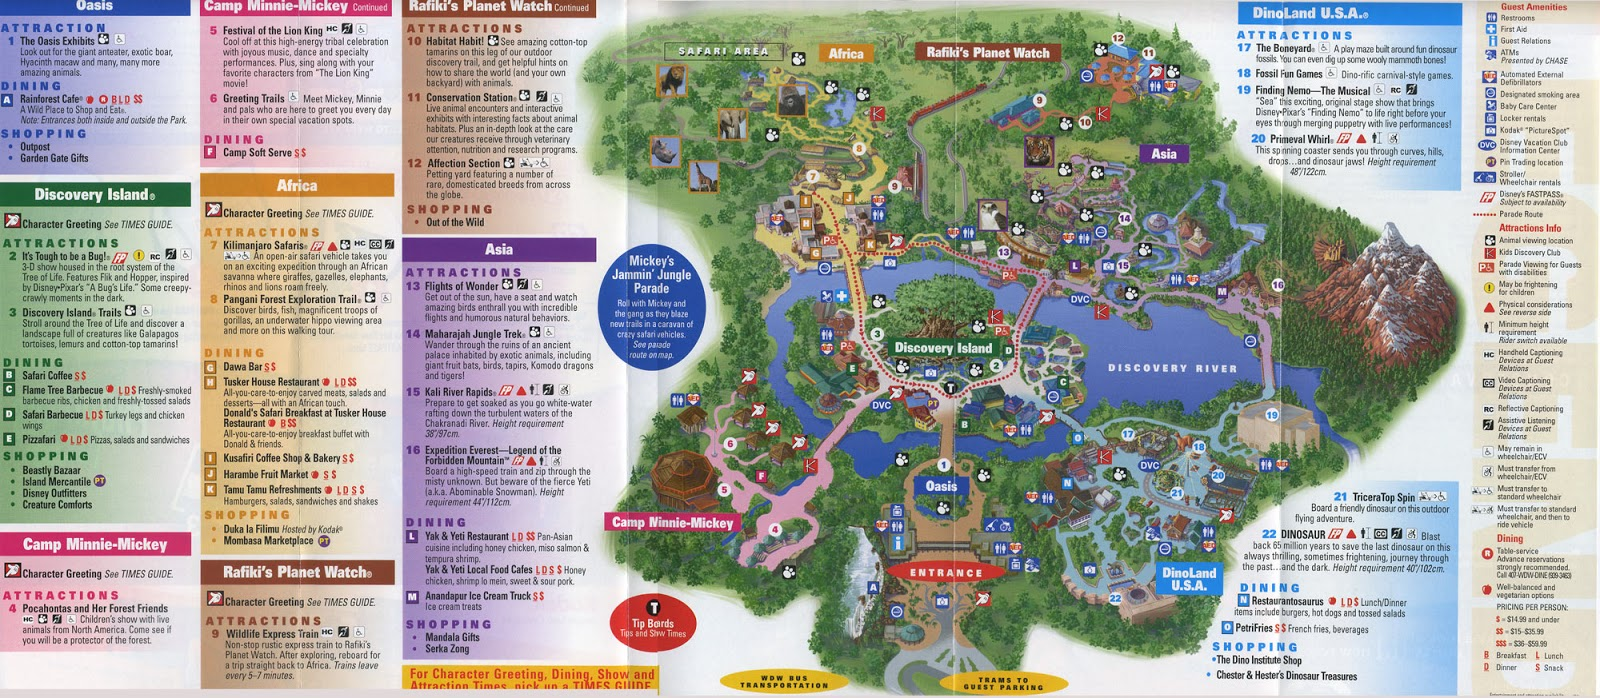 the 2008 edition of the animal kingdom map reveals what replaced tarzan rocks in the theater of the wild finding nemo the musical